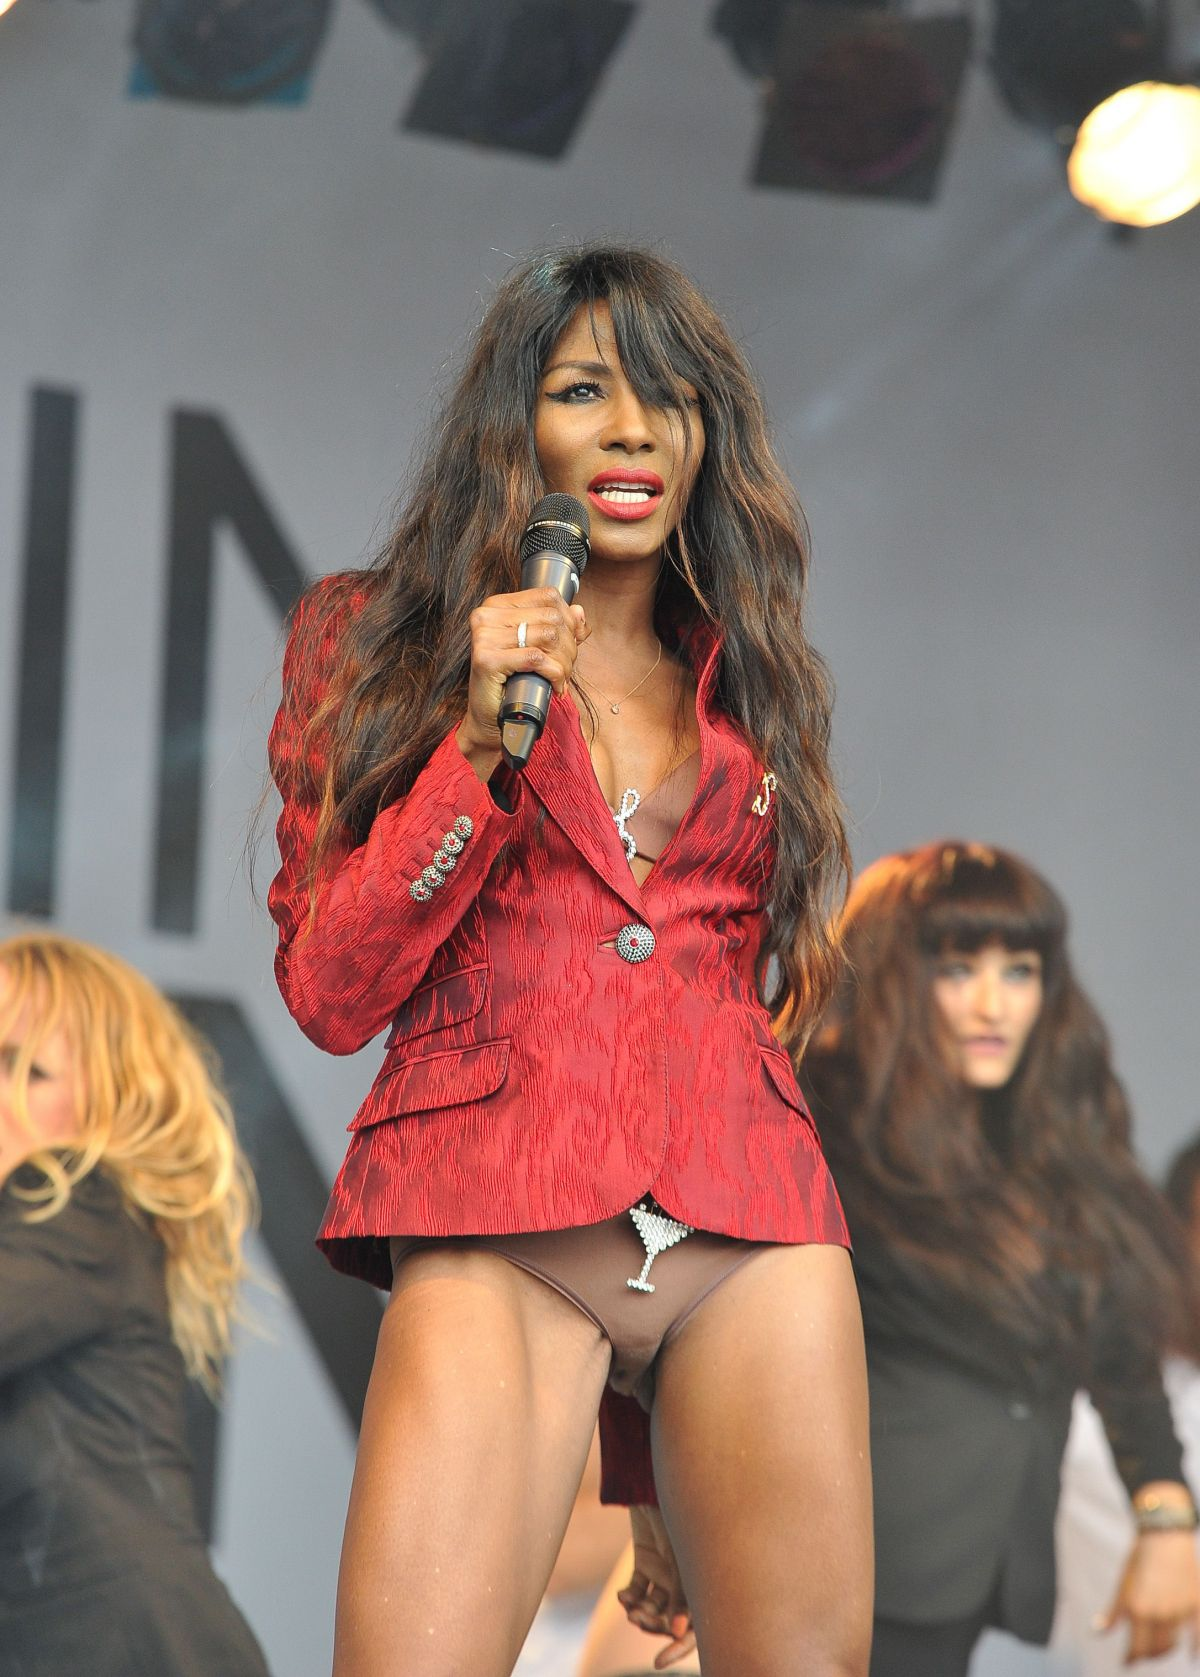 Sinitta At London Gay Pride On Trafalgar Square